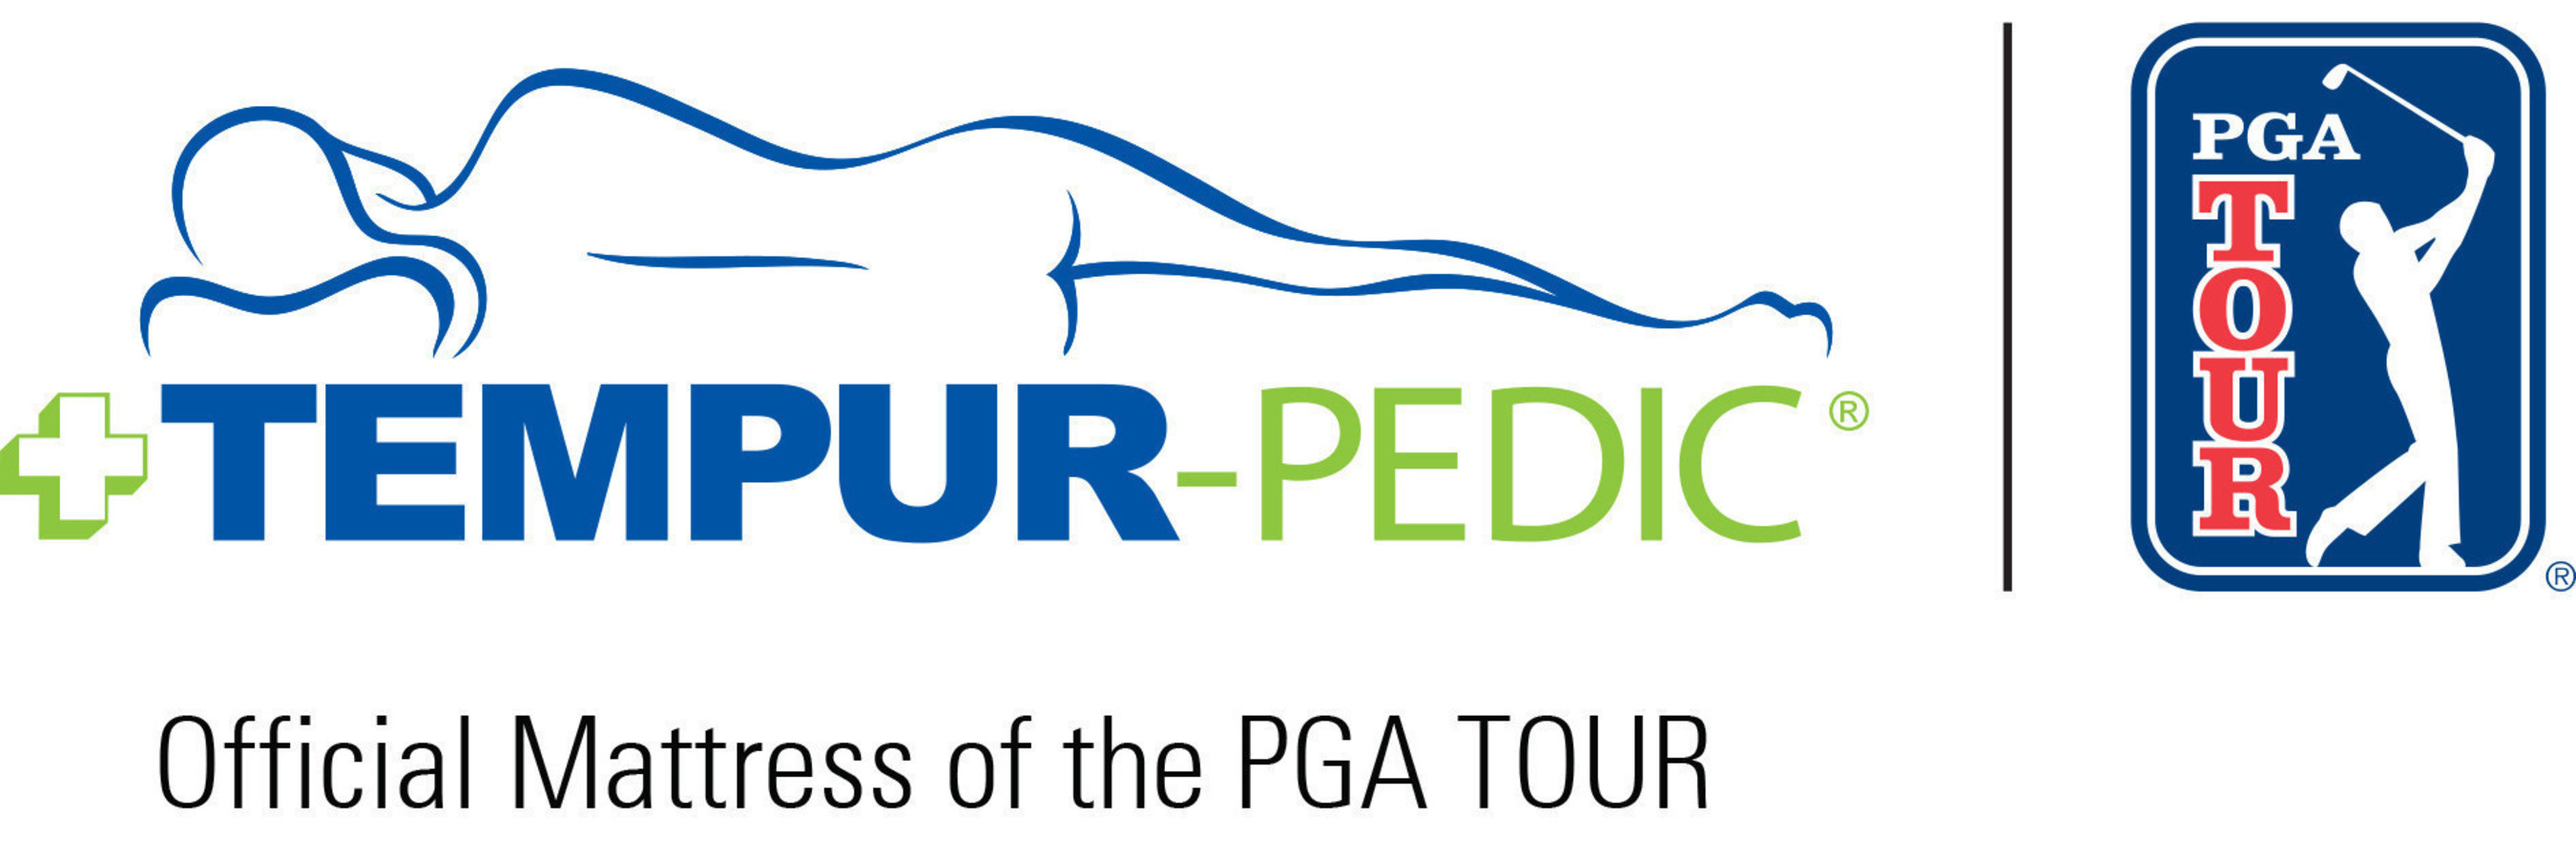 Tempur-Pedic, Official Mattress of the PGA TOUR (PRNewsFoto/Tempur Sealy International, Inc.)